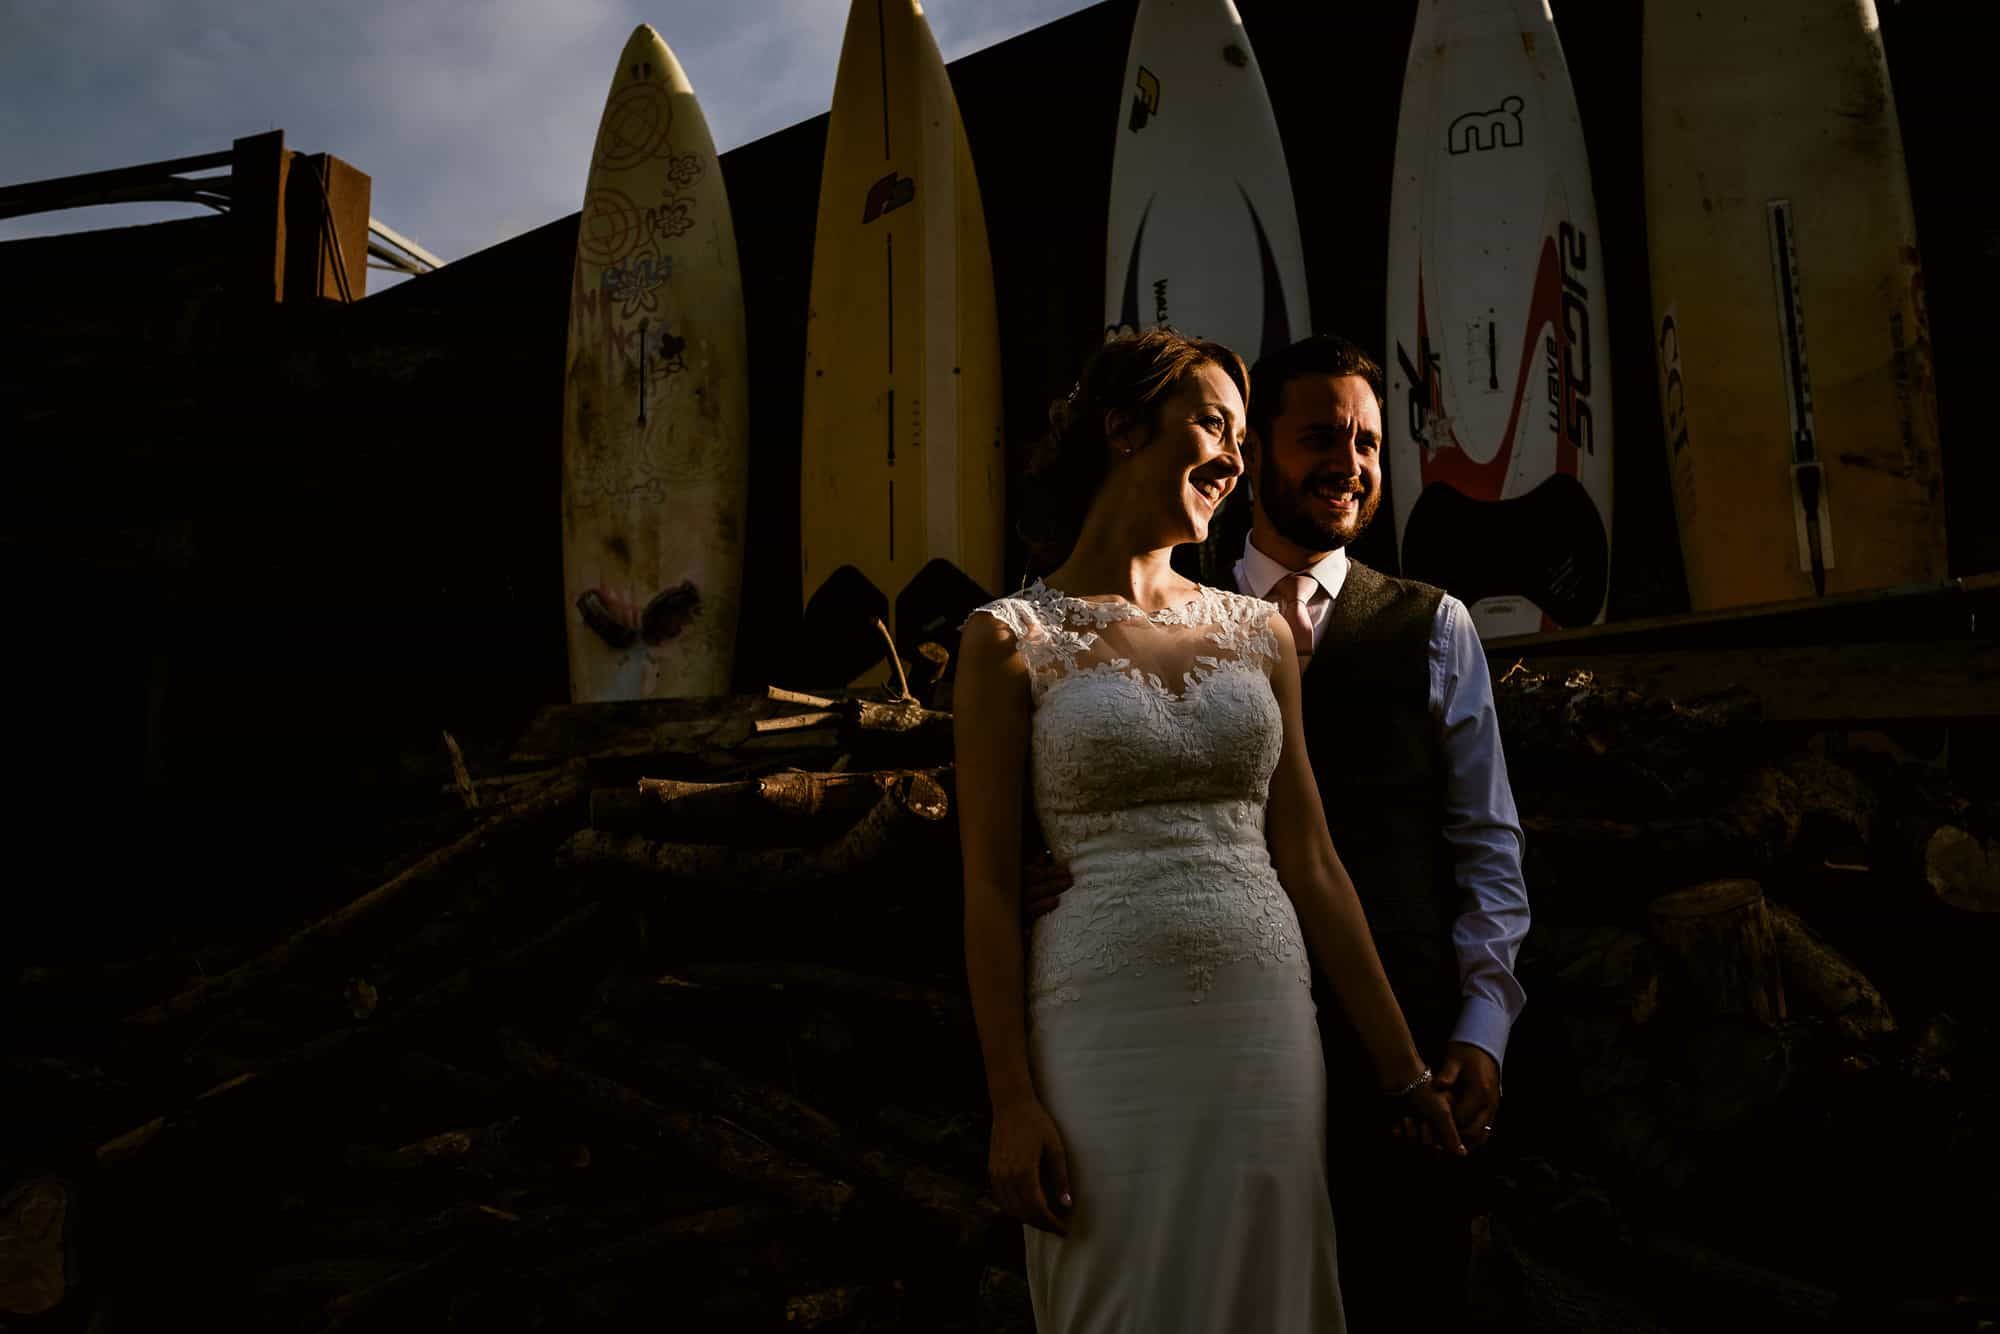 east-quay-wedding-photographer-matt-tyler-0068